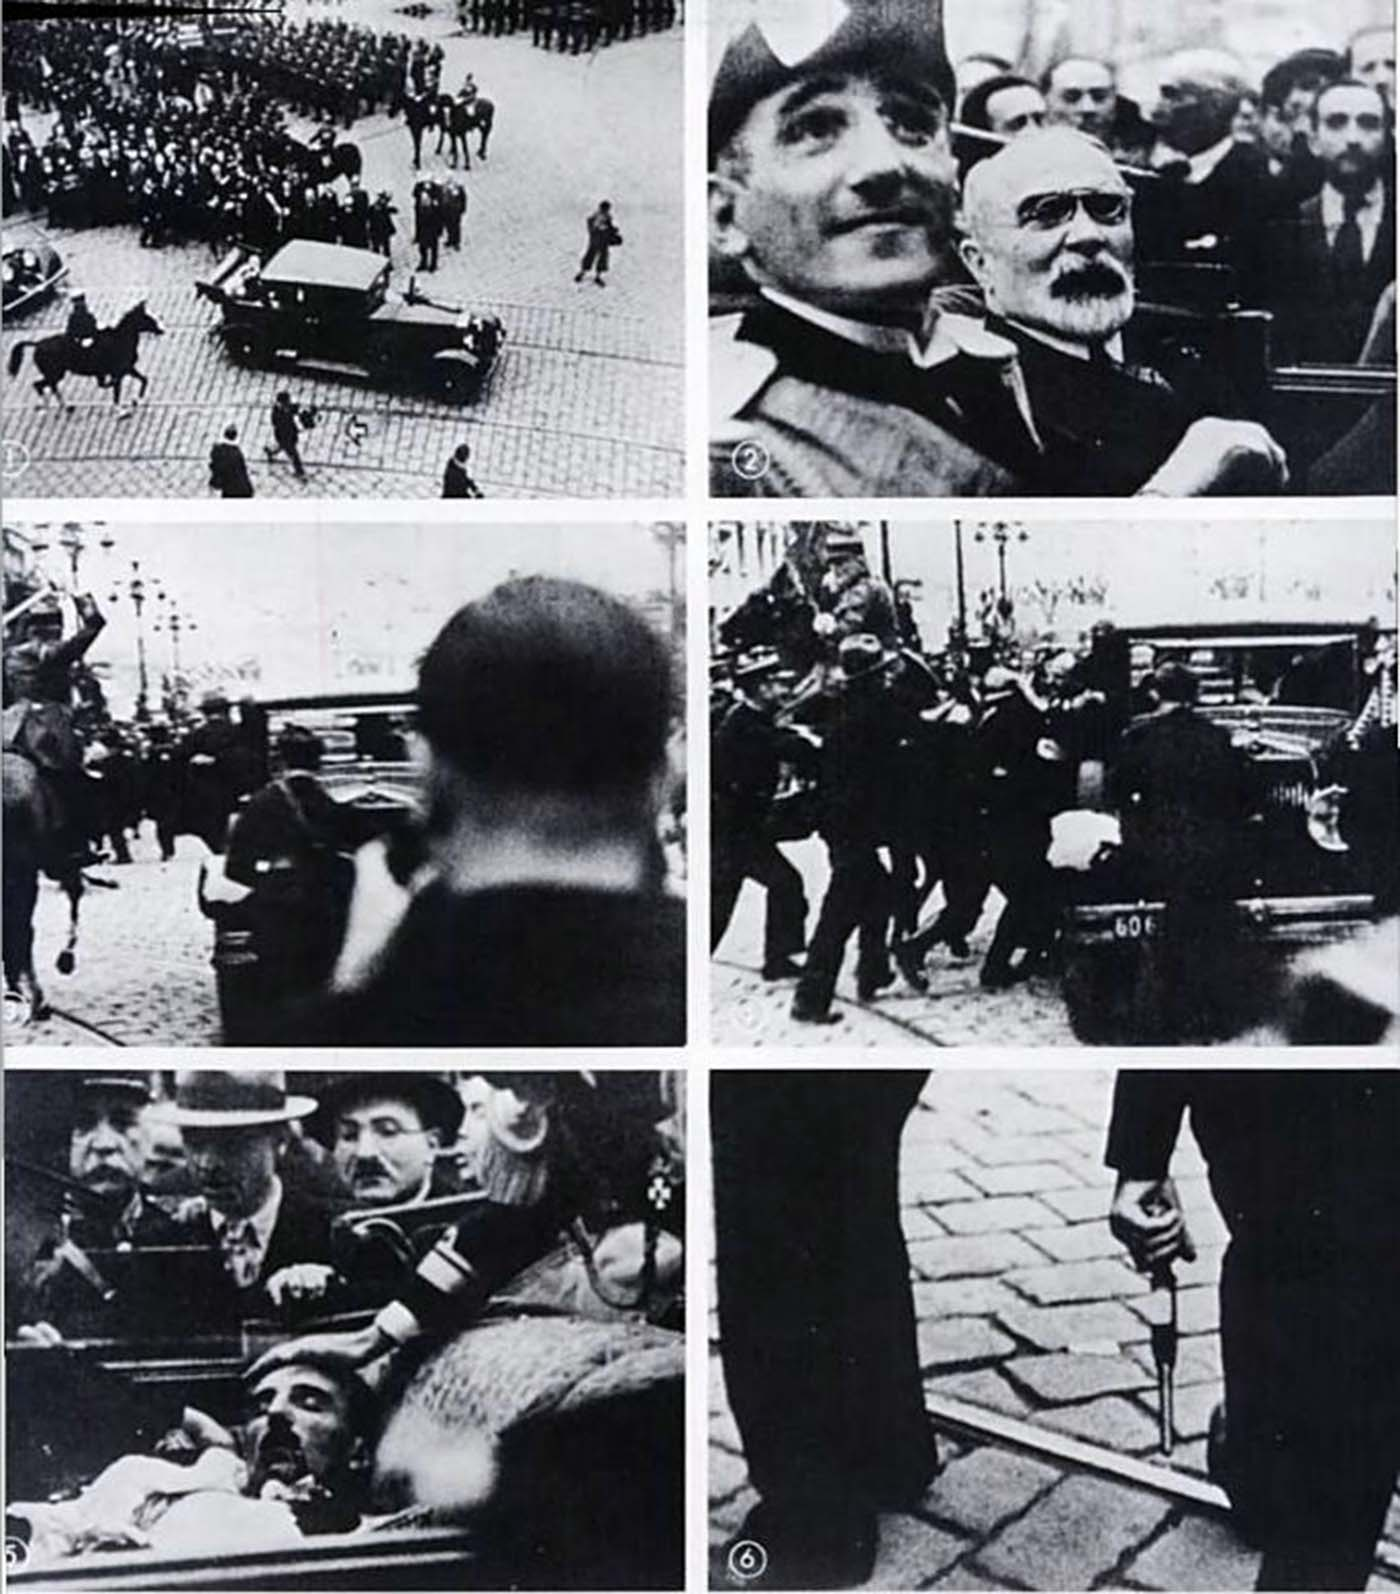 It was one of the first assassinations captured on film; the shooting occurred straight in front of the cameraman, who was only feet away at the time.